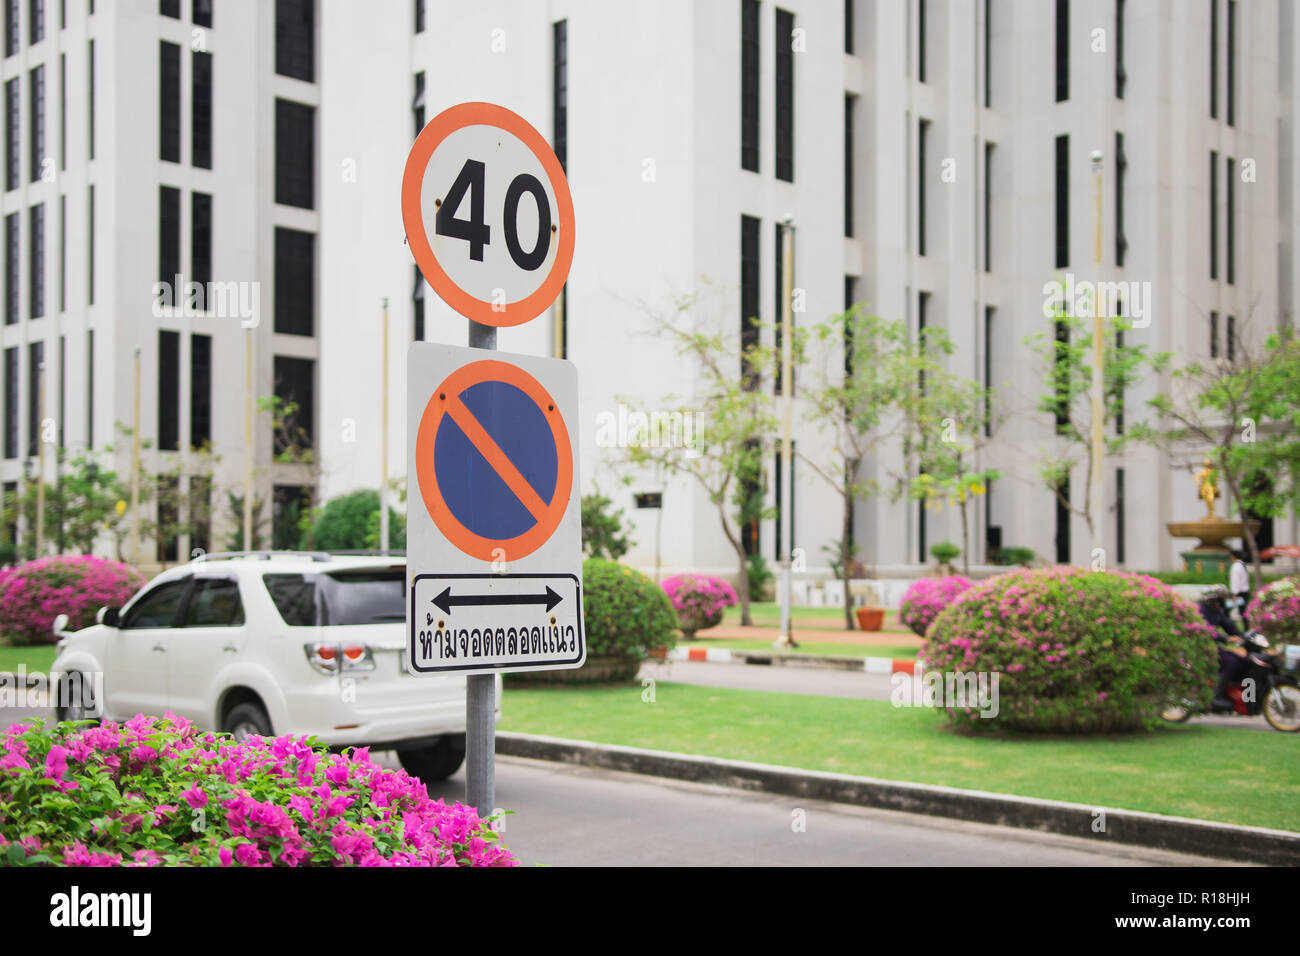 Speed limit and no parking sign in Thailand. The text in thai said 'Do not park along this road' - Stock Image